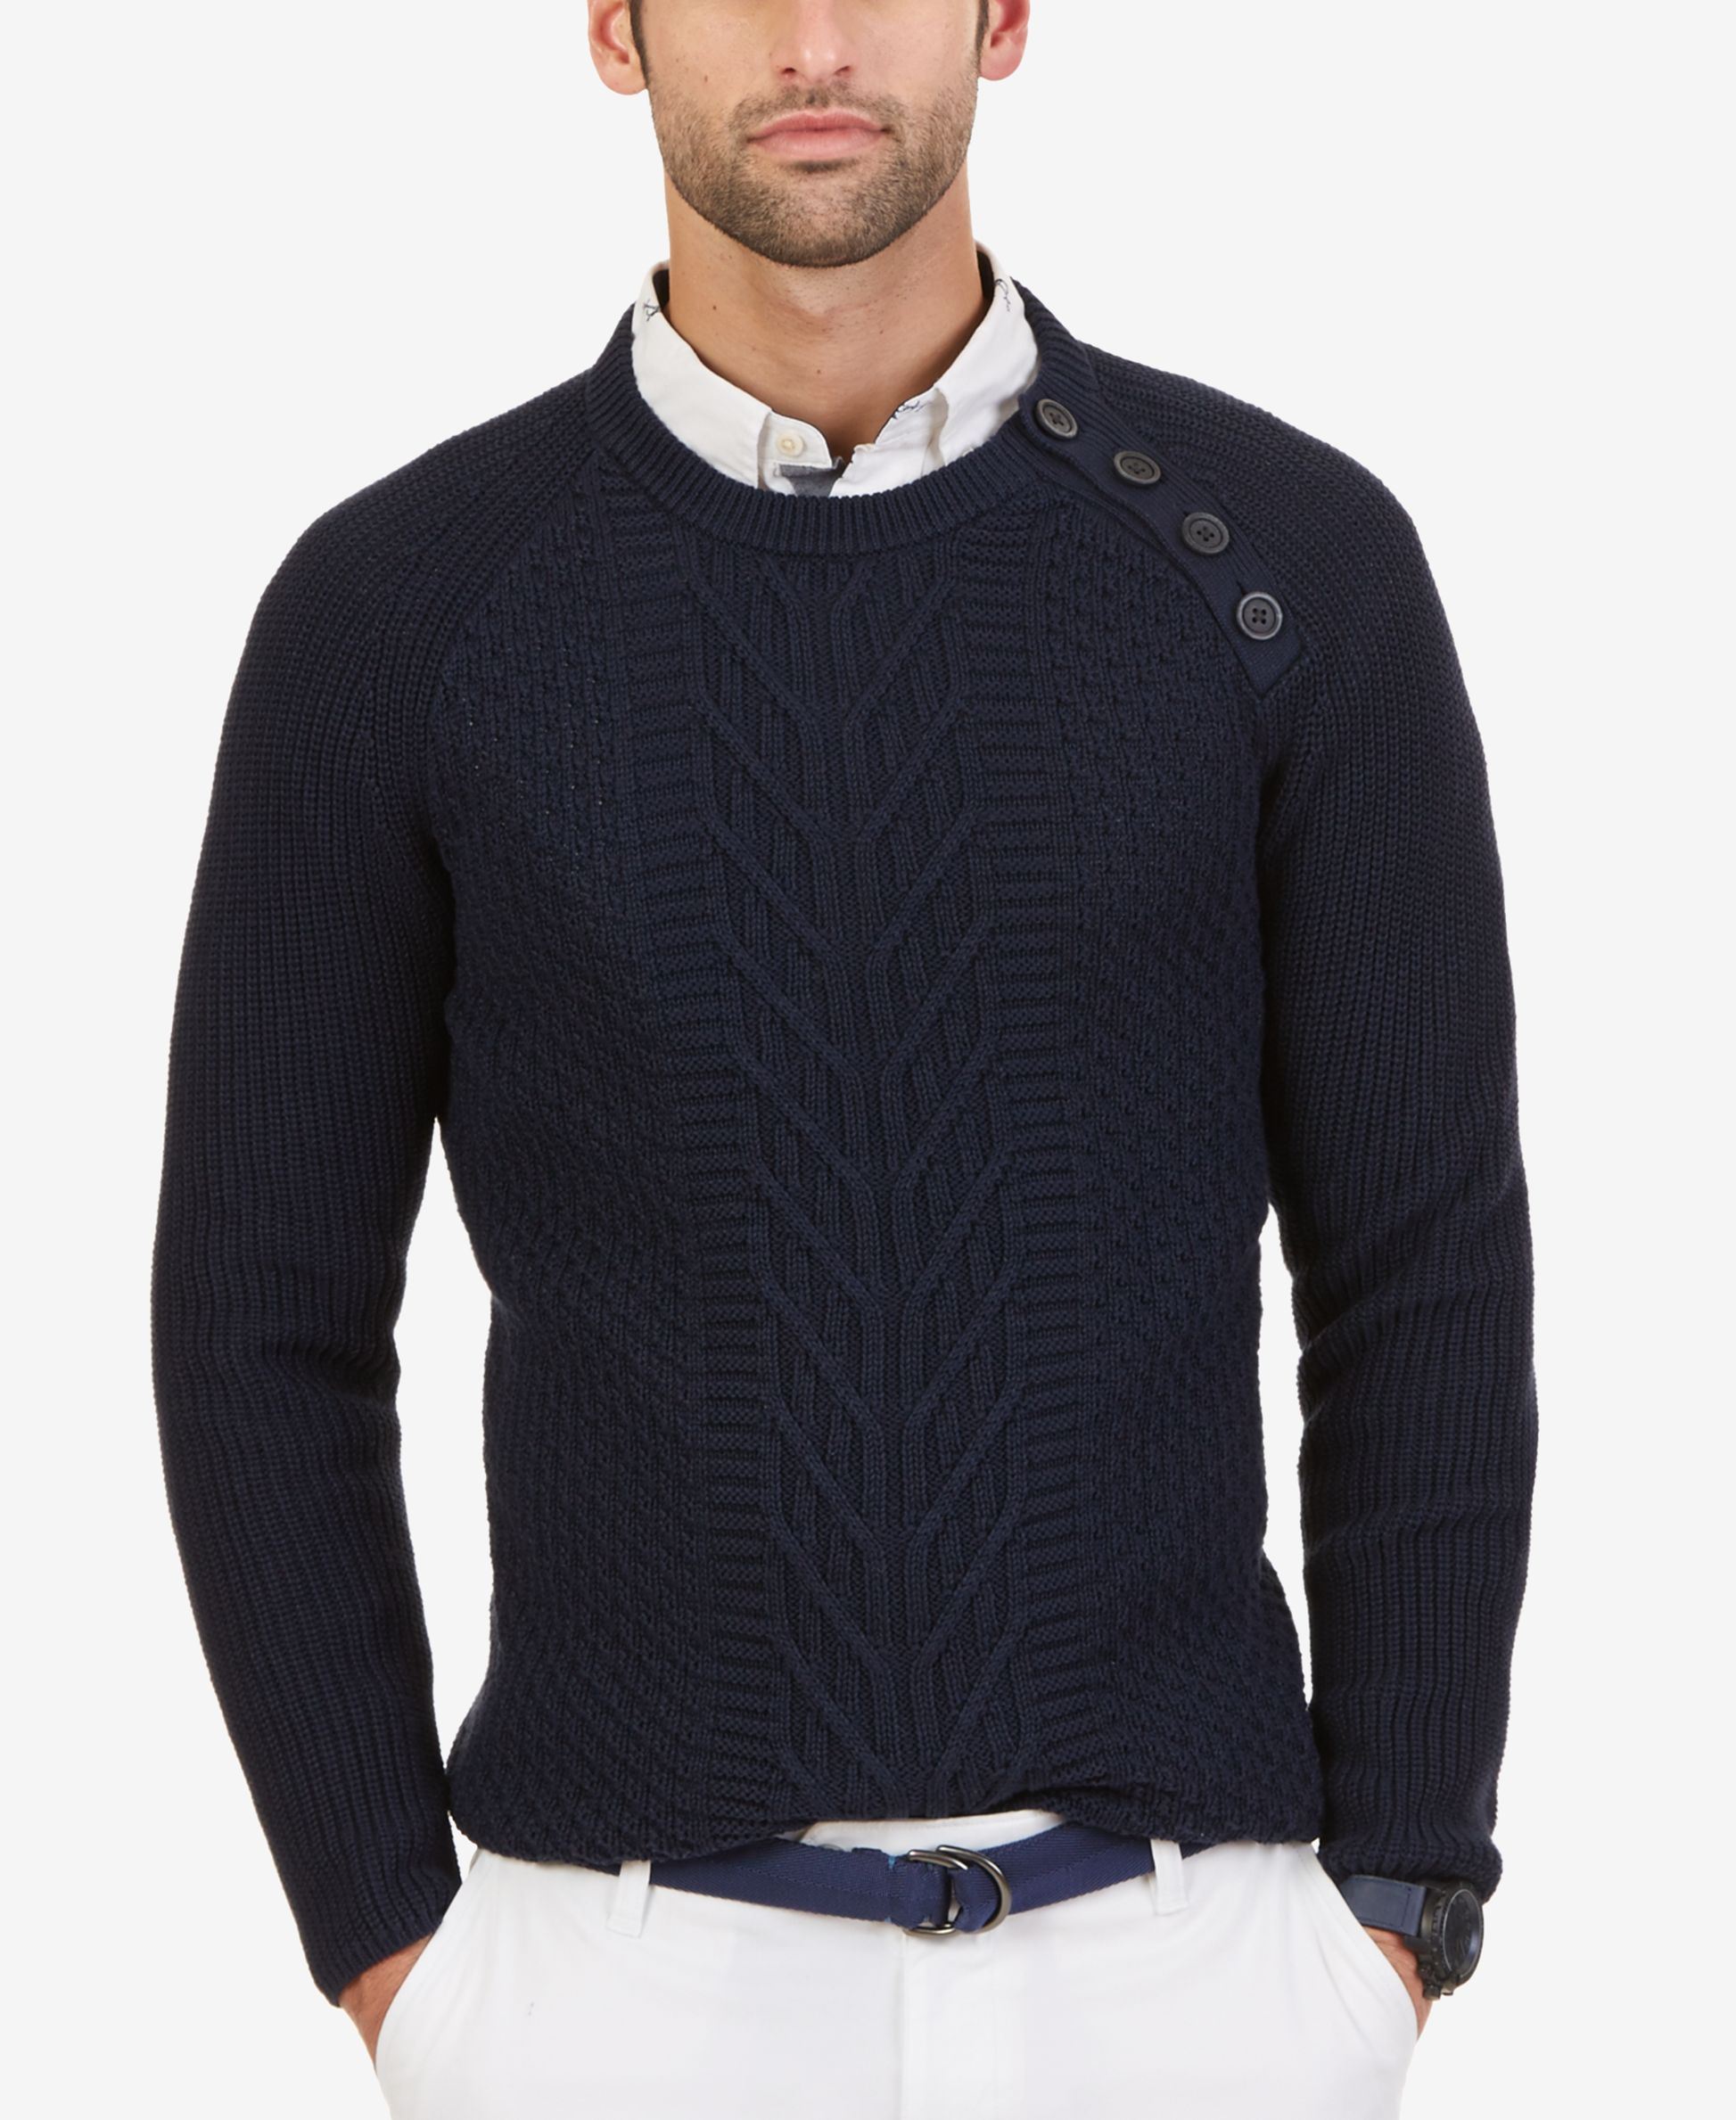 Nautica Men's Cable-Knit Buttoned Crew Sweater | Mens Fashion ...